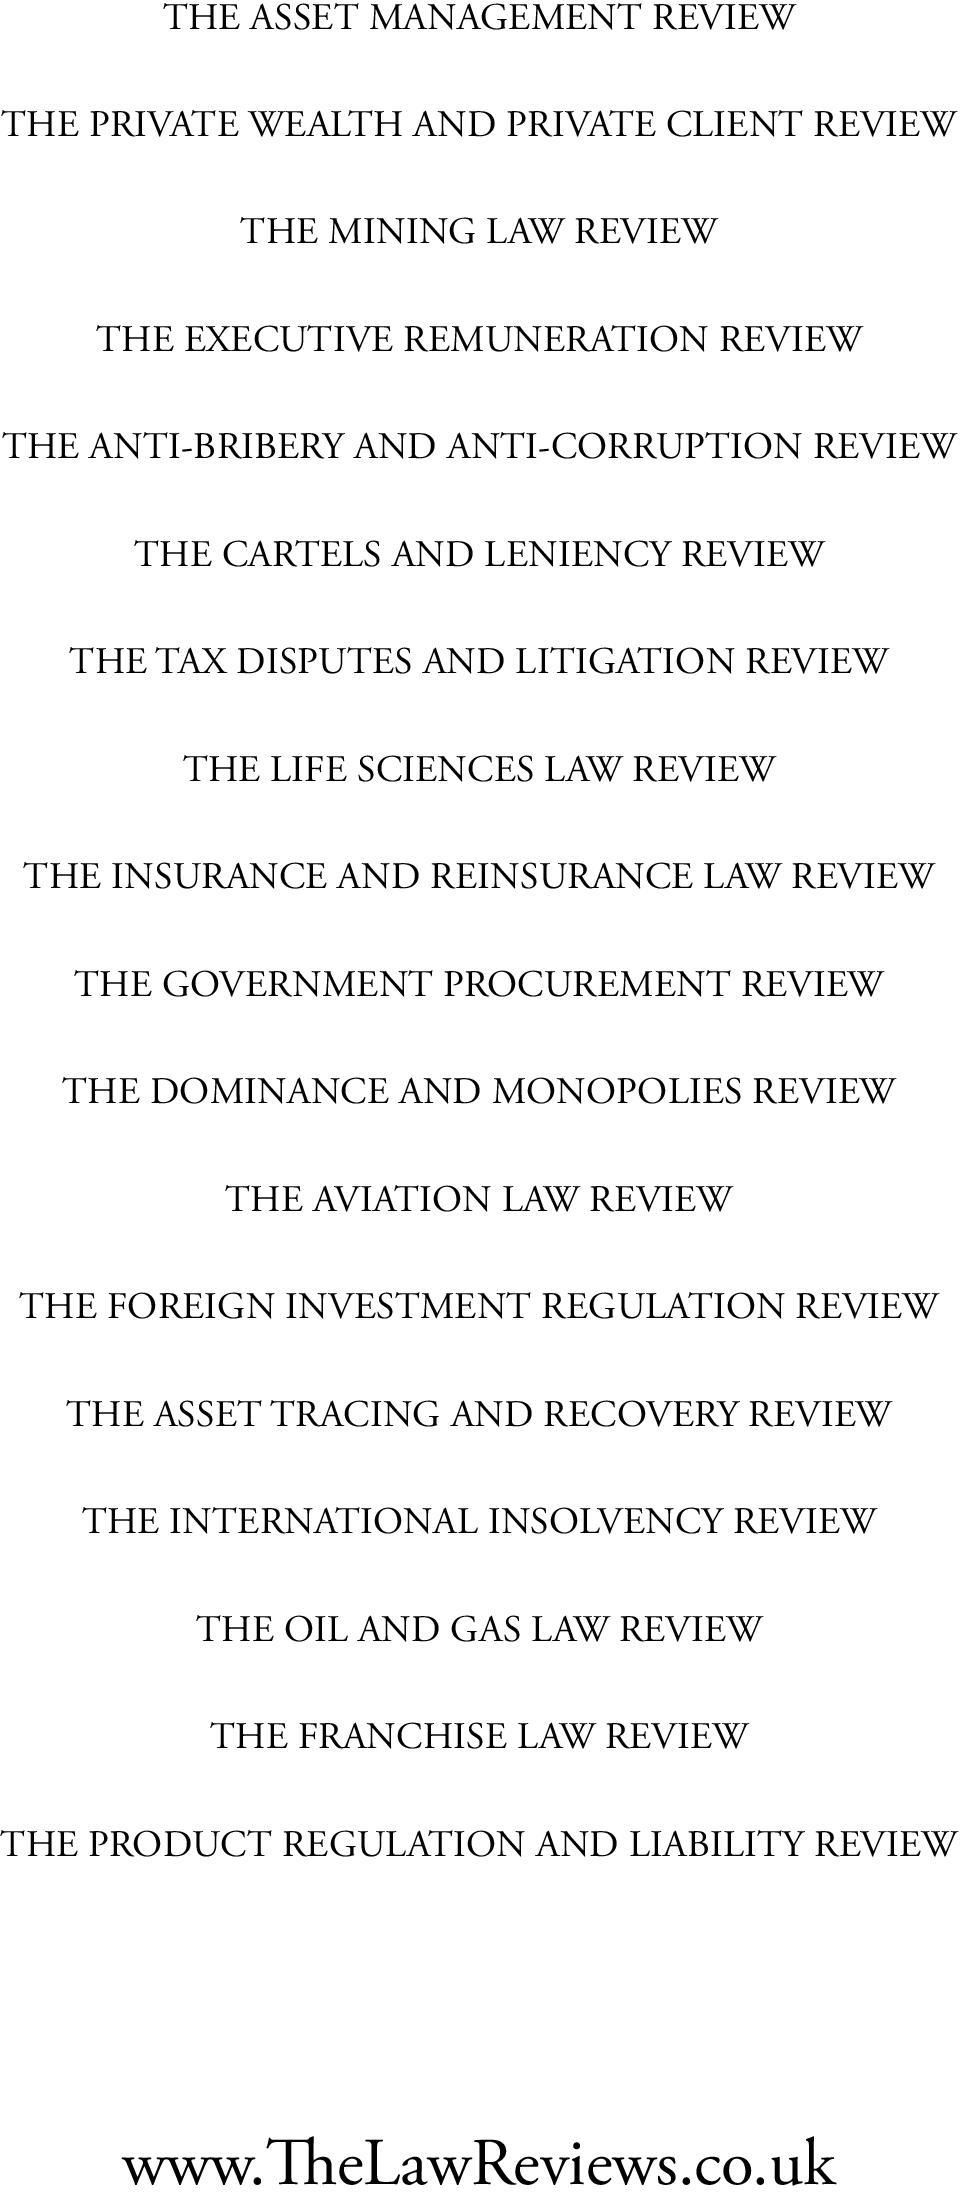 REVIEW THE GOVERNMENT PROCUREMENT REVIEW THE DOMINANCE AND MONOPOLIES REVIEW THE AVIATION LAW REVIEW THE FOREIGN INVESTMENT REGULATION REVIEW THE ASSET TRACING